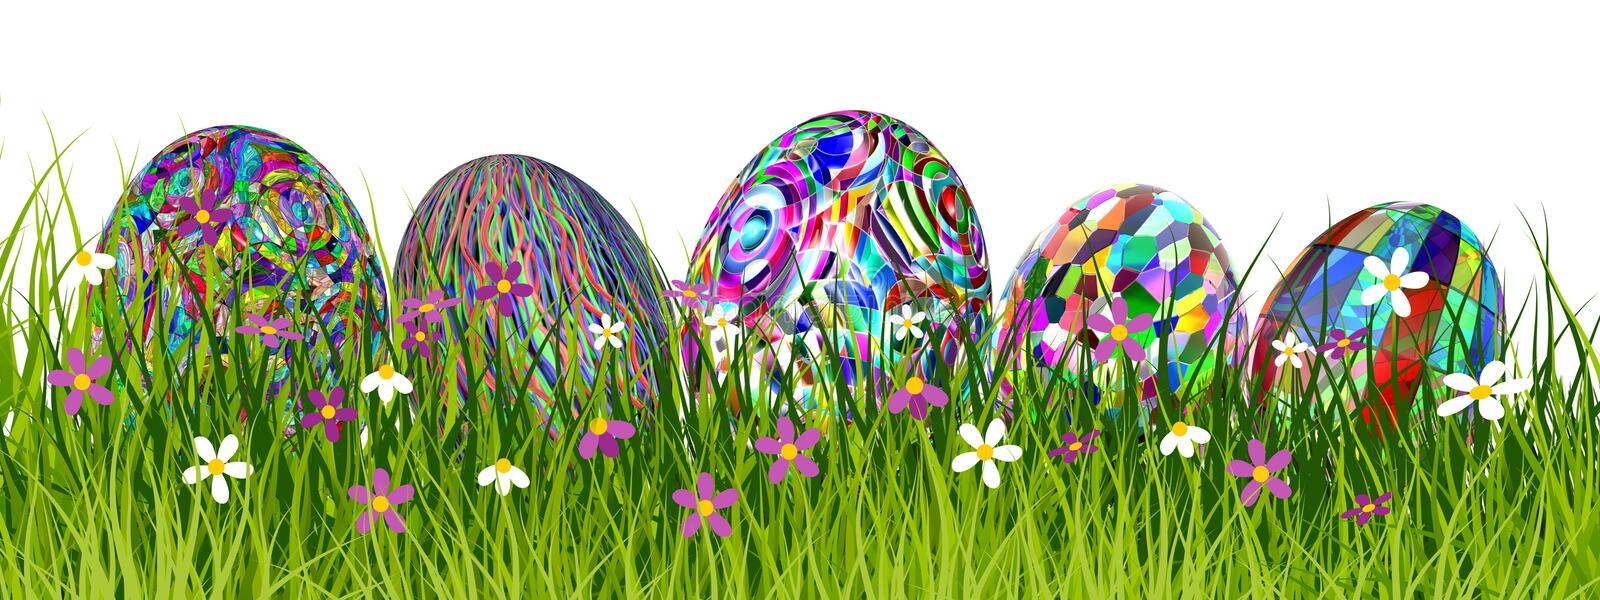 Colorful Easter eggs in beautiful grass - 3D render royalty free illustration